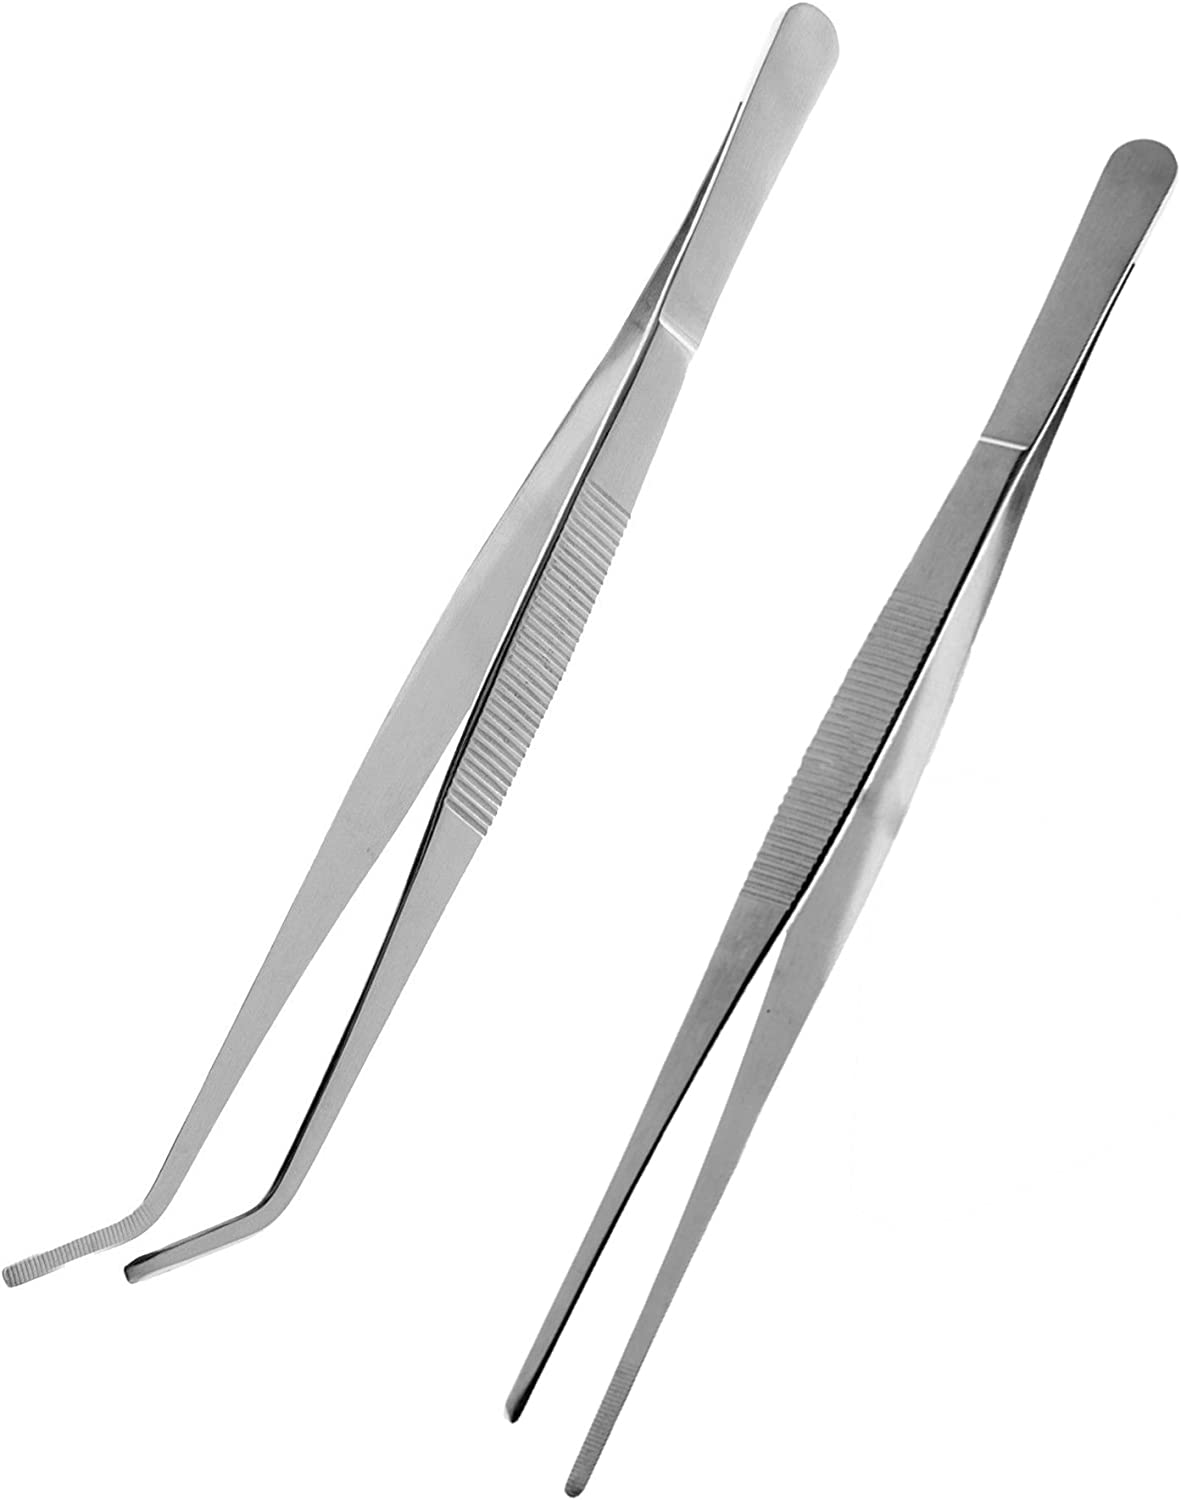 Dzrige 7.1 Inch Stainless Steel Tweezers Feeding Tongs for Aquarium Fishtank Reptile Lizards Gecko Spider Straight and Curved 2pcs